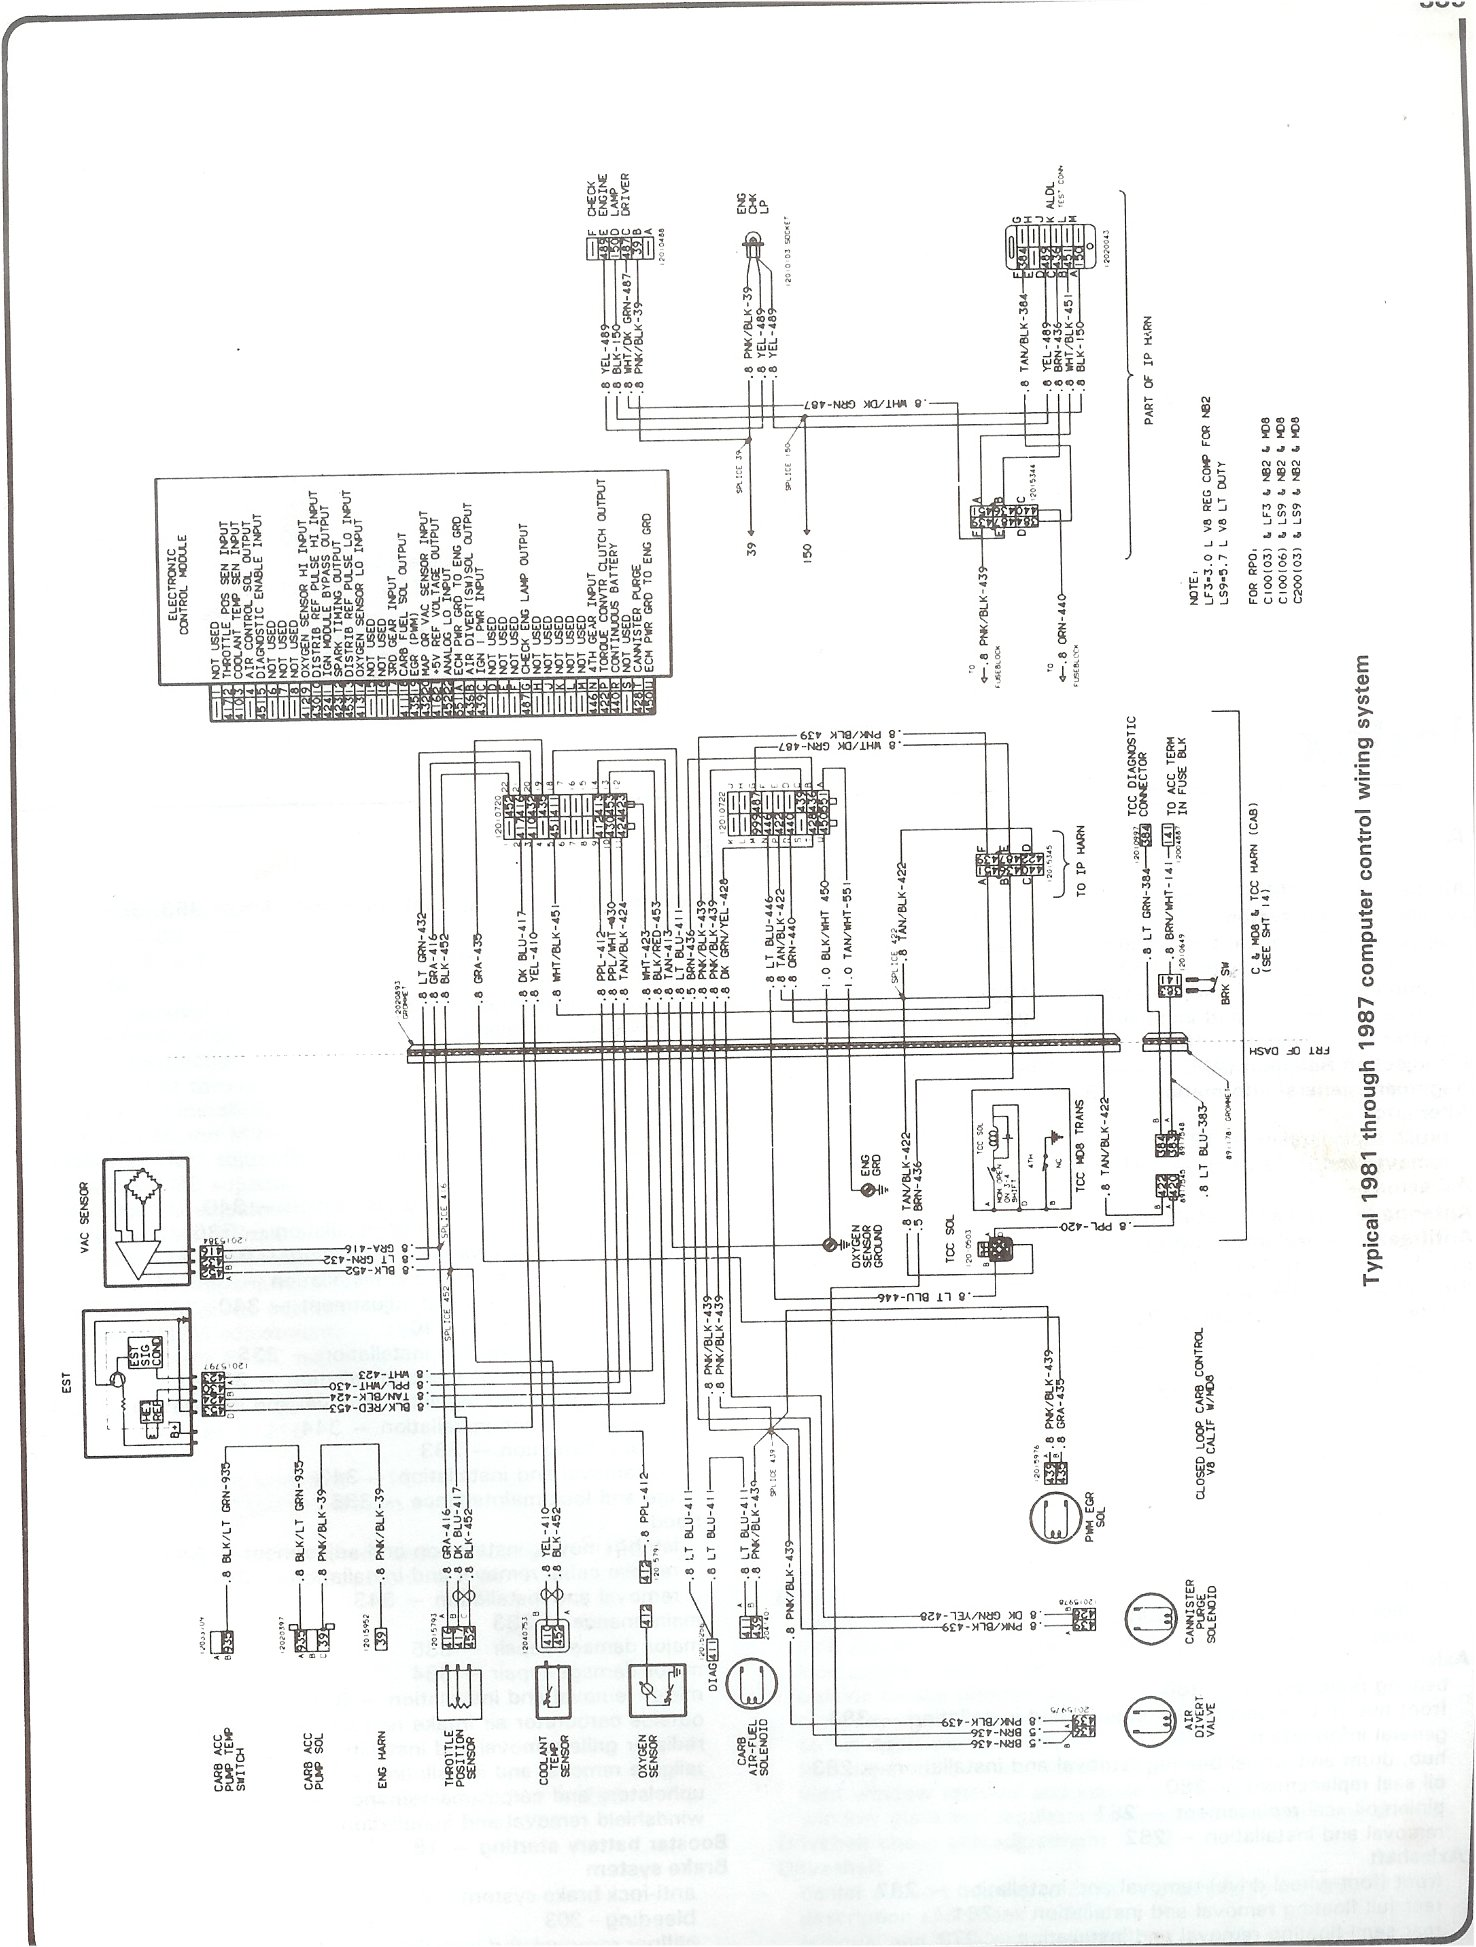 81 87_computer_control_wiring complete 73 87 wiring diagrams truck wiring diagrams at edmiracle.co